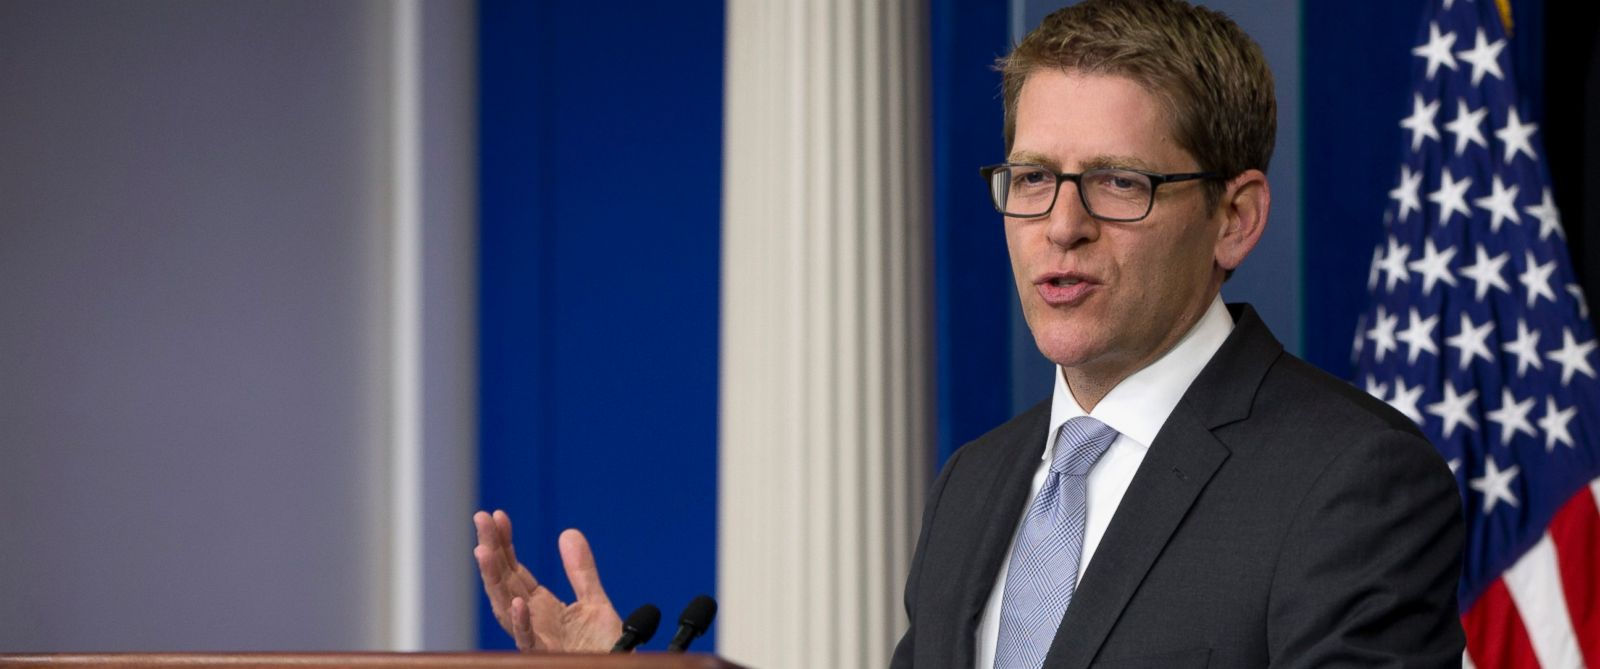 PHOTO: White House press secretary Jay Carney speaks during the daily news briefing at the White House in Washington, in this May 16, 2014 file photo.